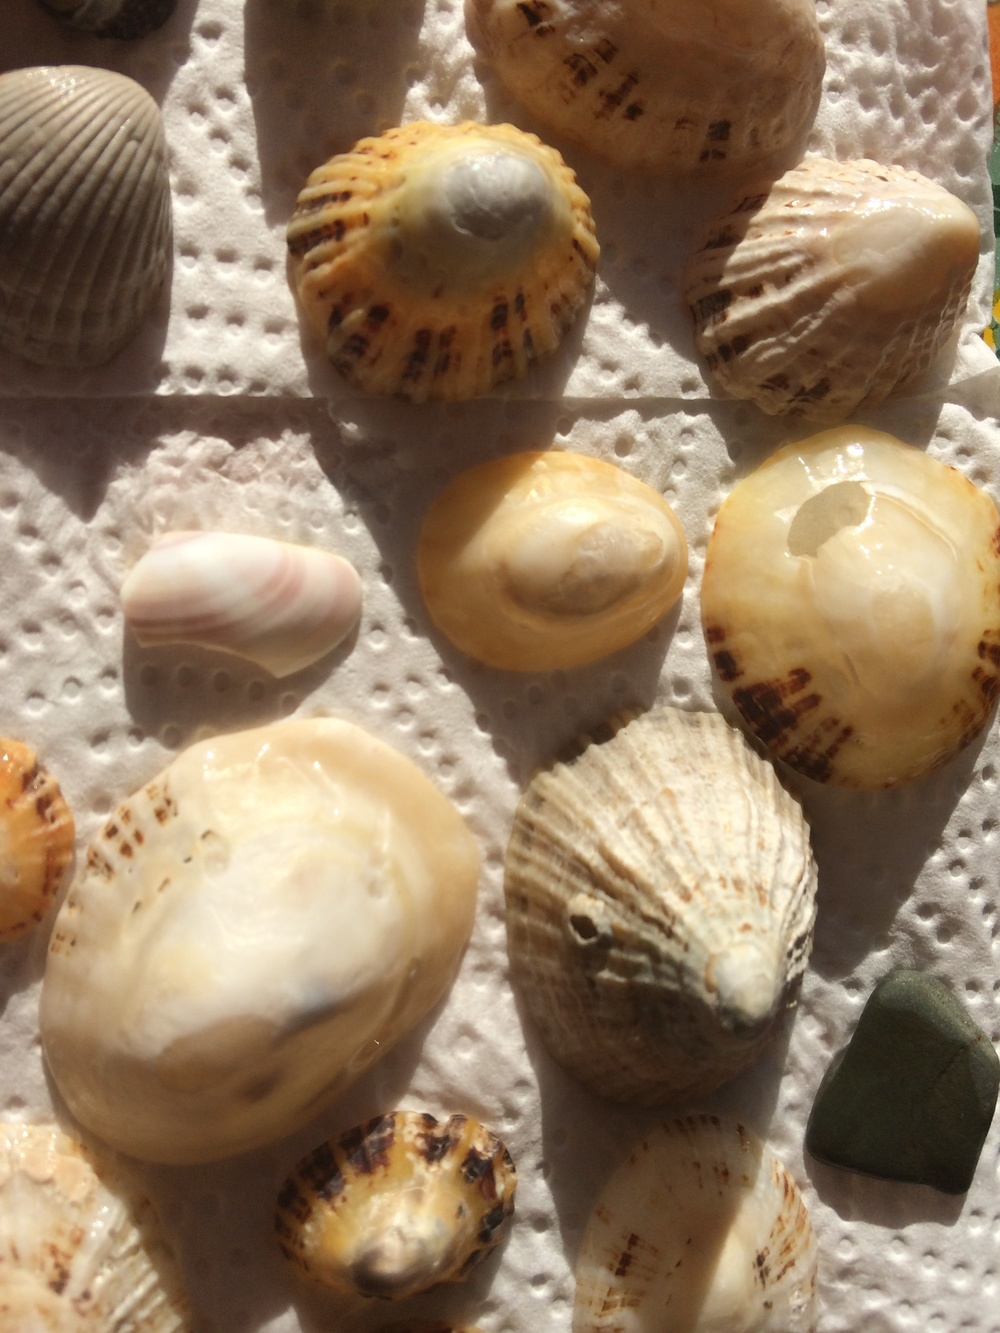 A small part of Hannah's seashell collection